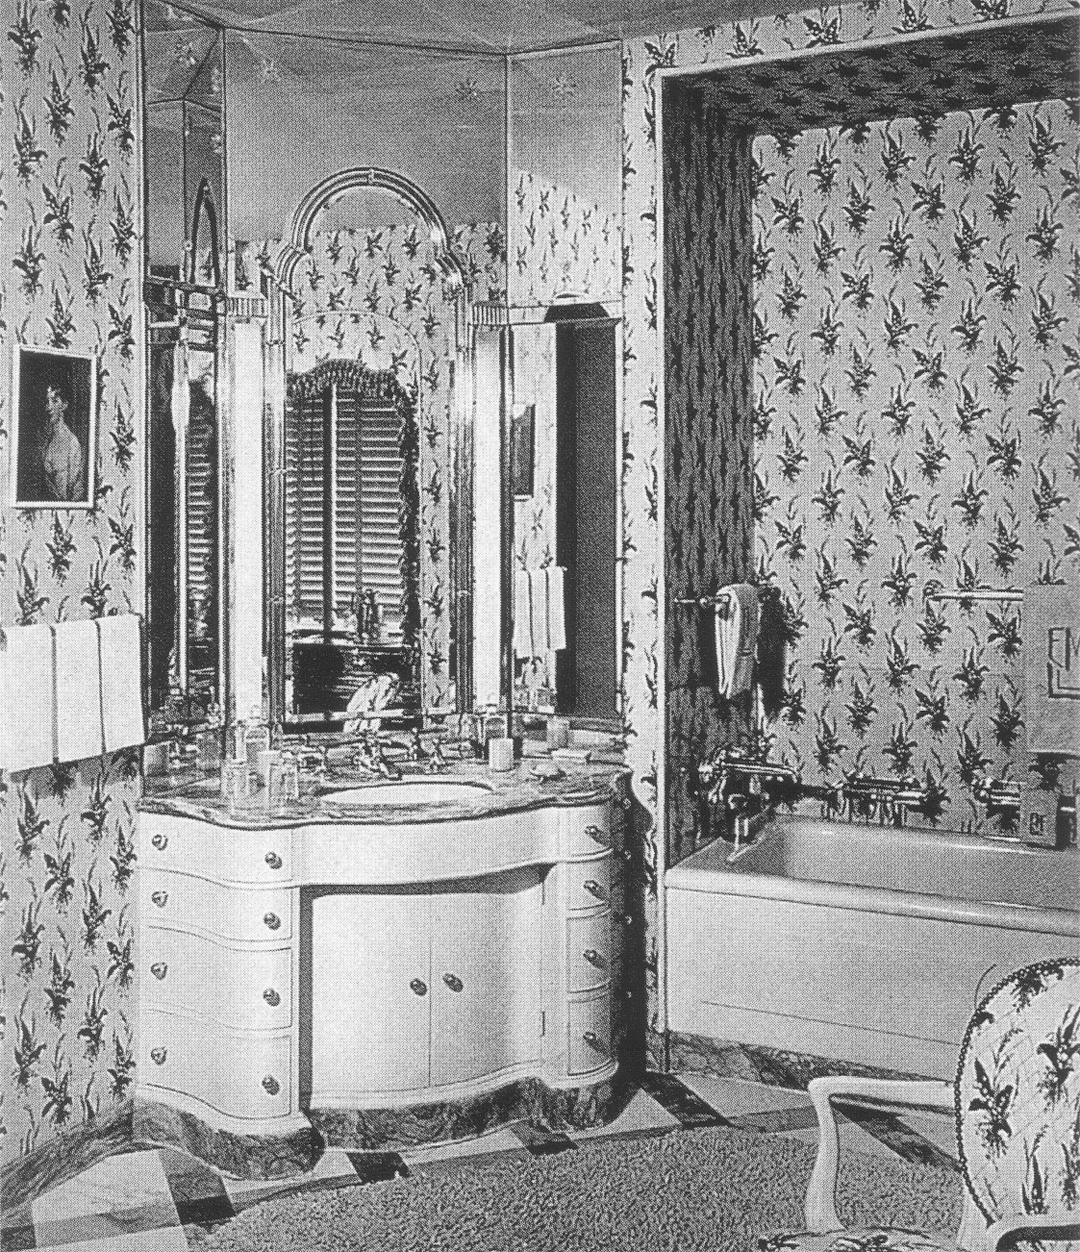 (above) This ornately shaped vanity, from the book 'David Adler, Architect